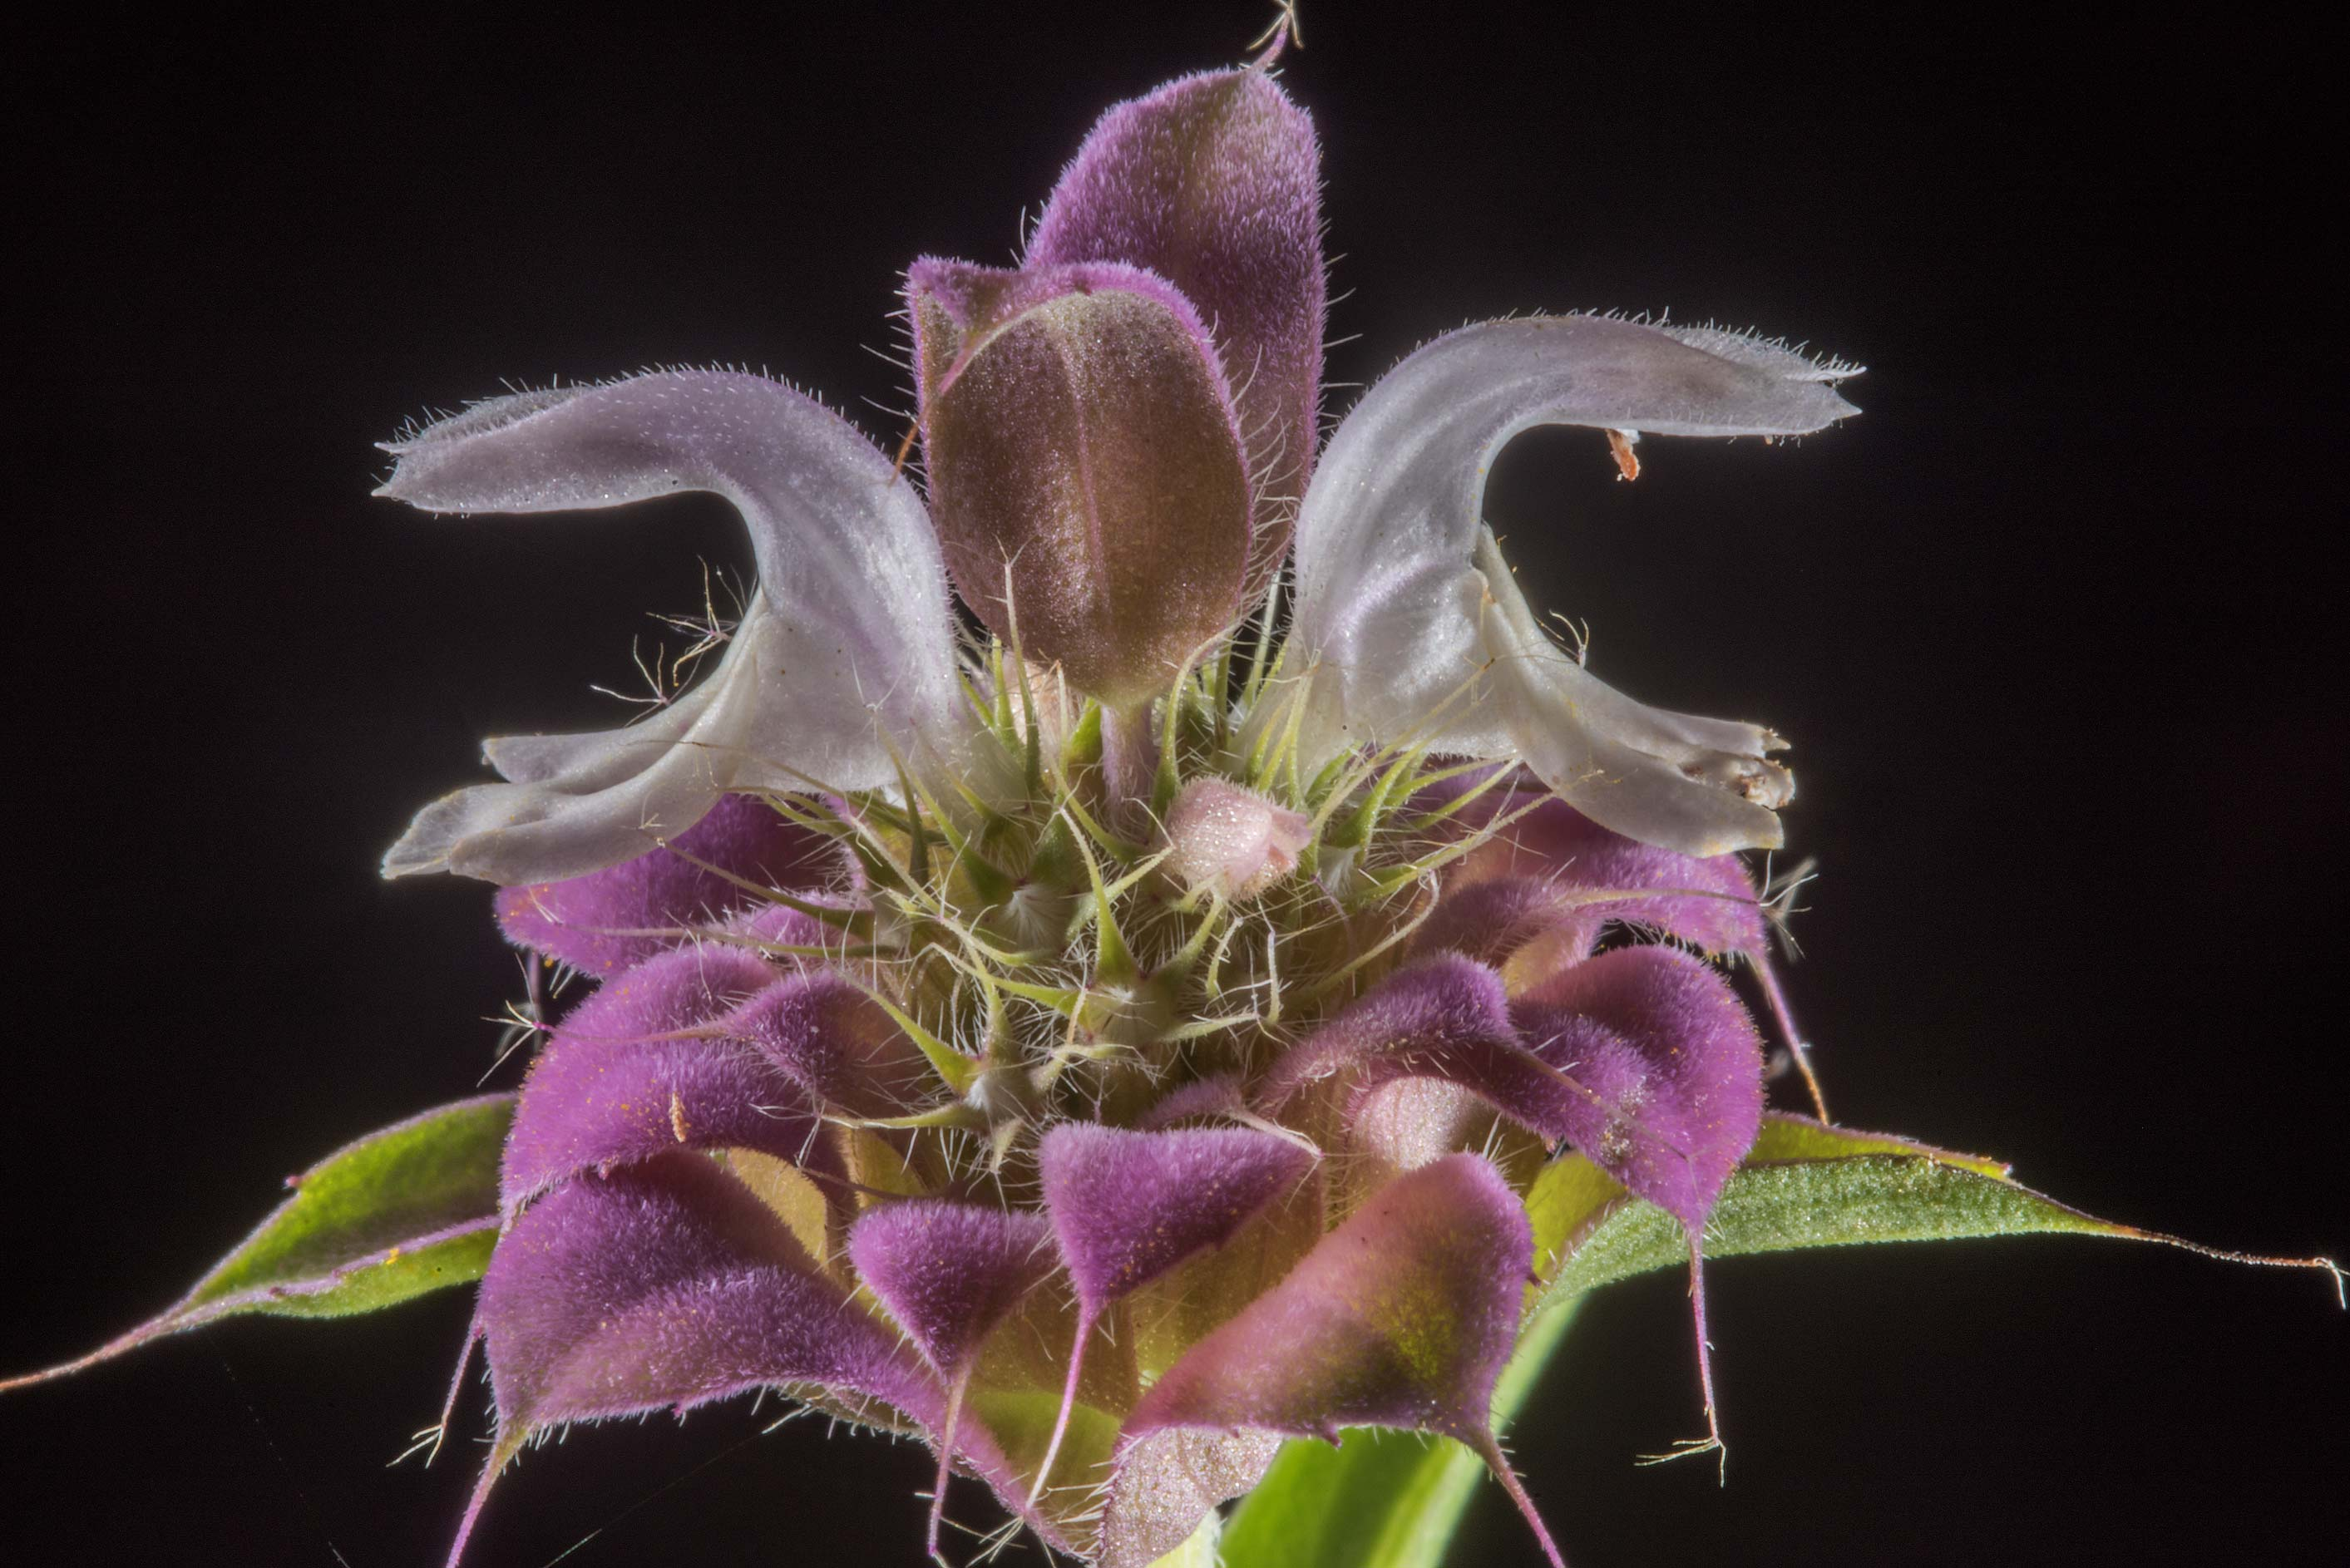 Flowers of beebalm (Monarda punctata) in David E...Ashburn St.. College Station, Texas